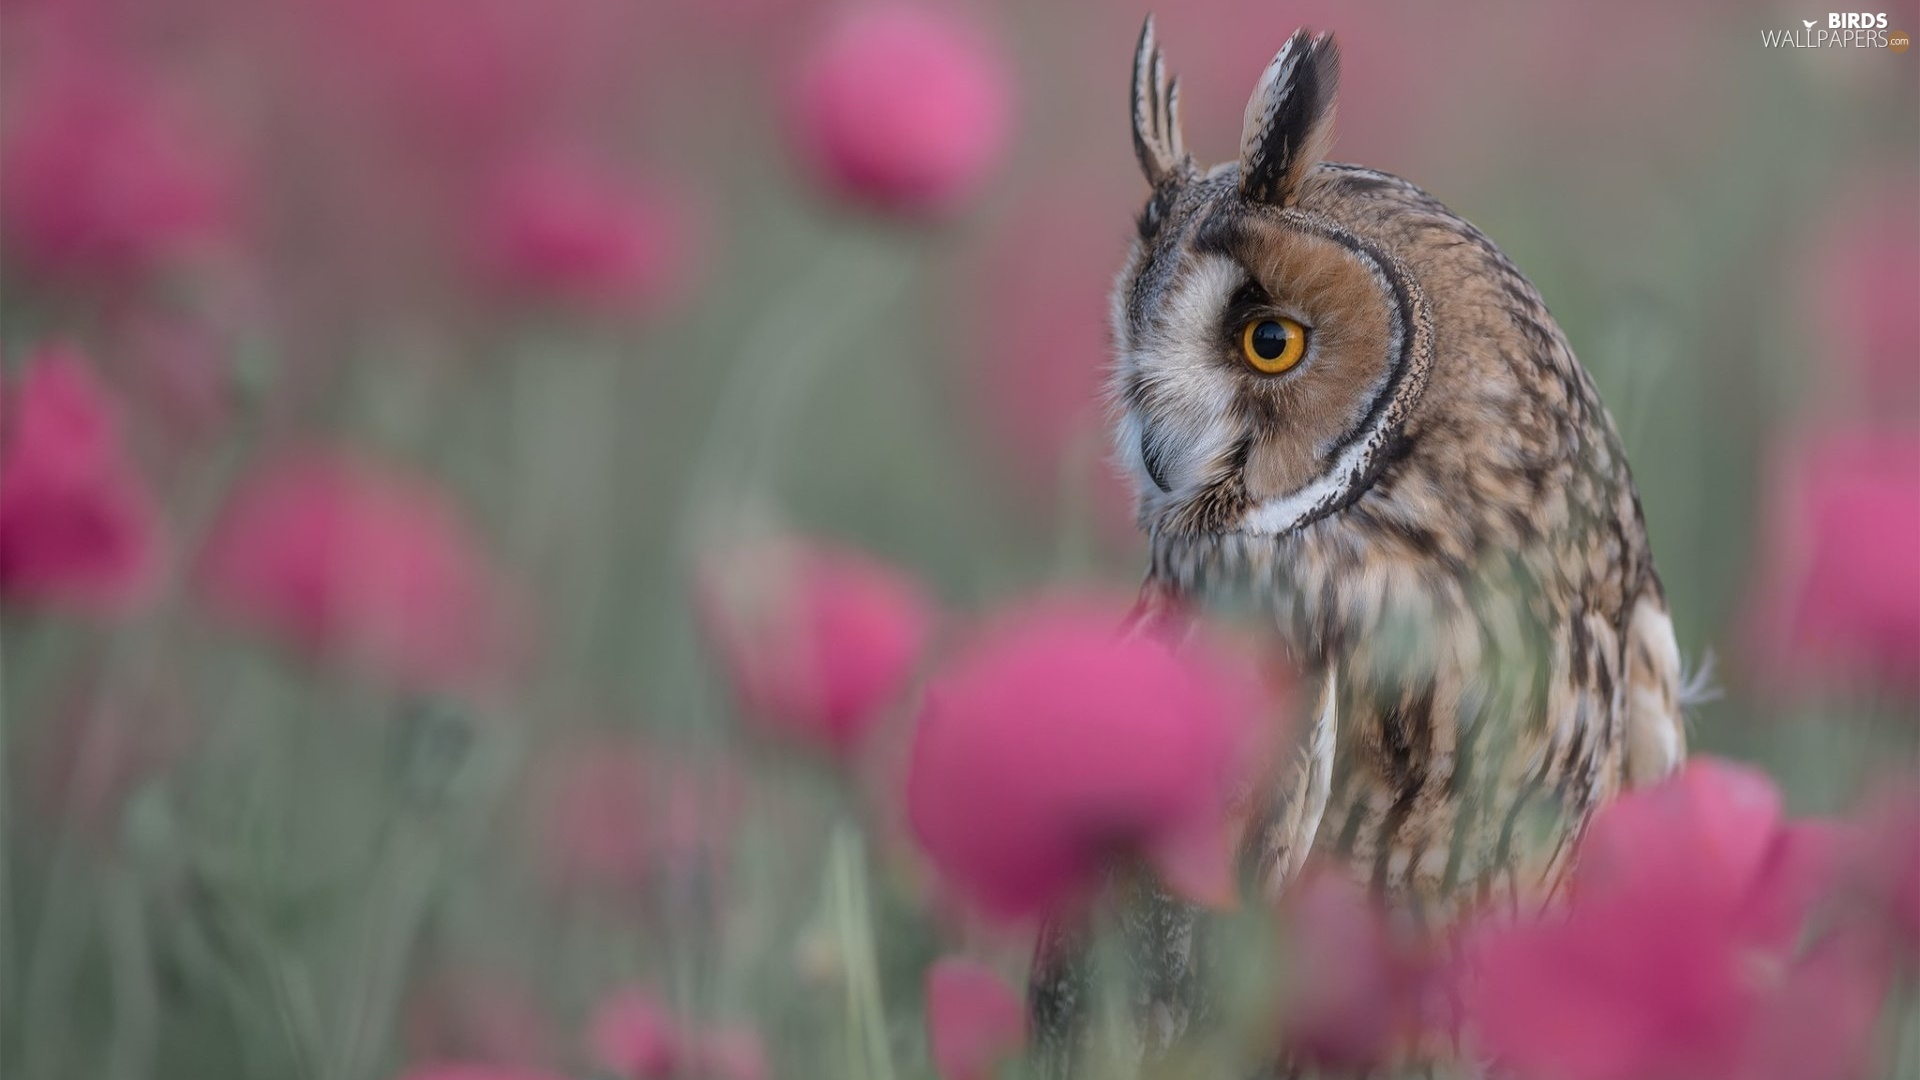 blurry background, Bird, Owl Ear